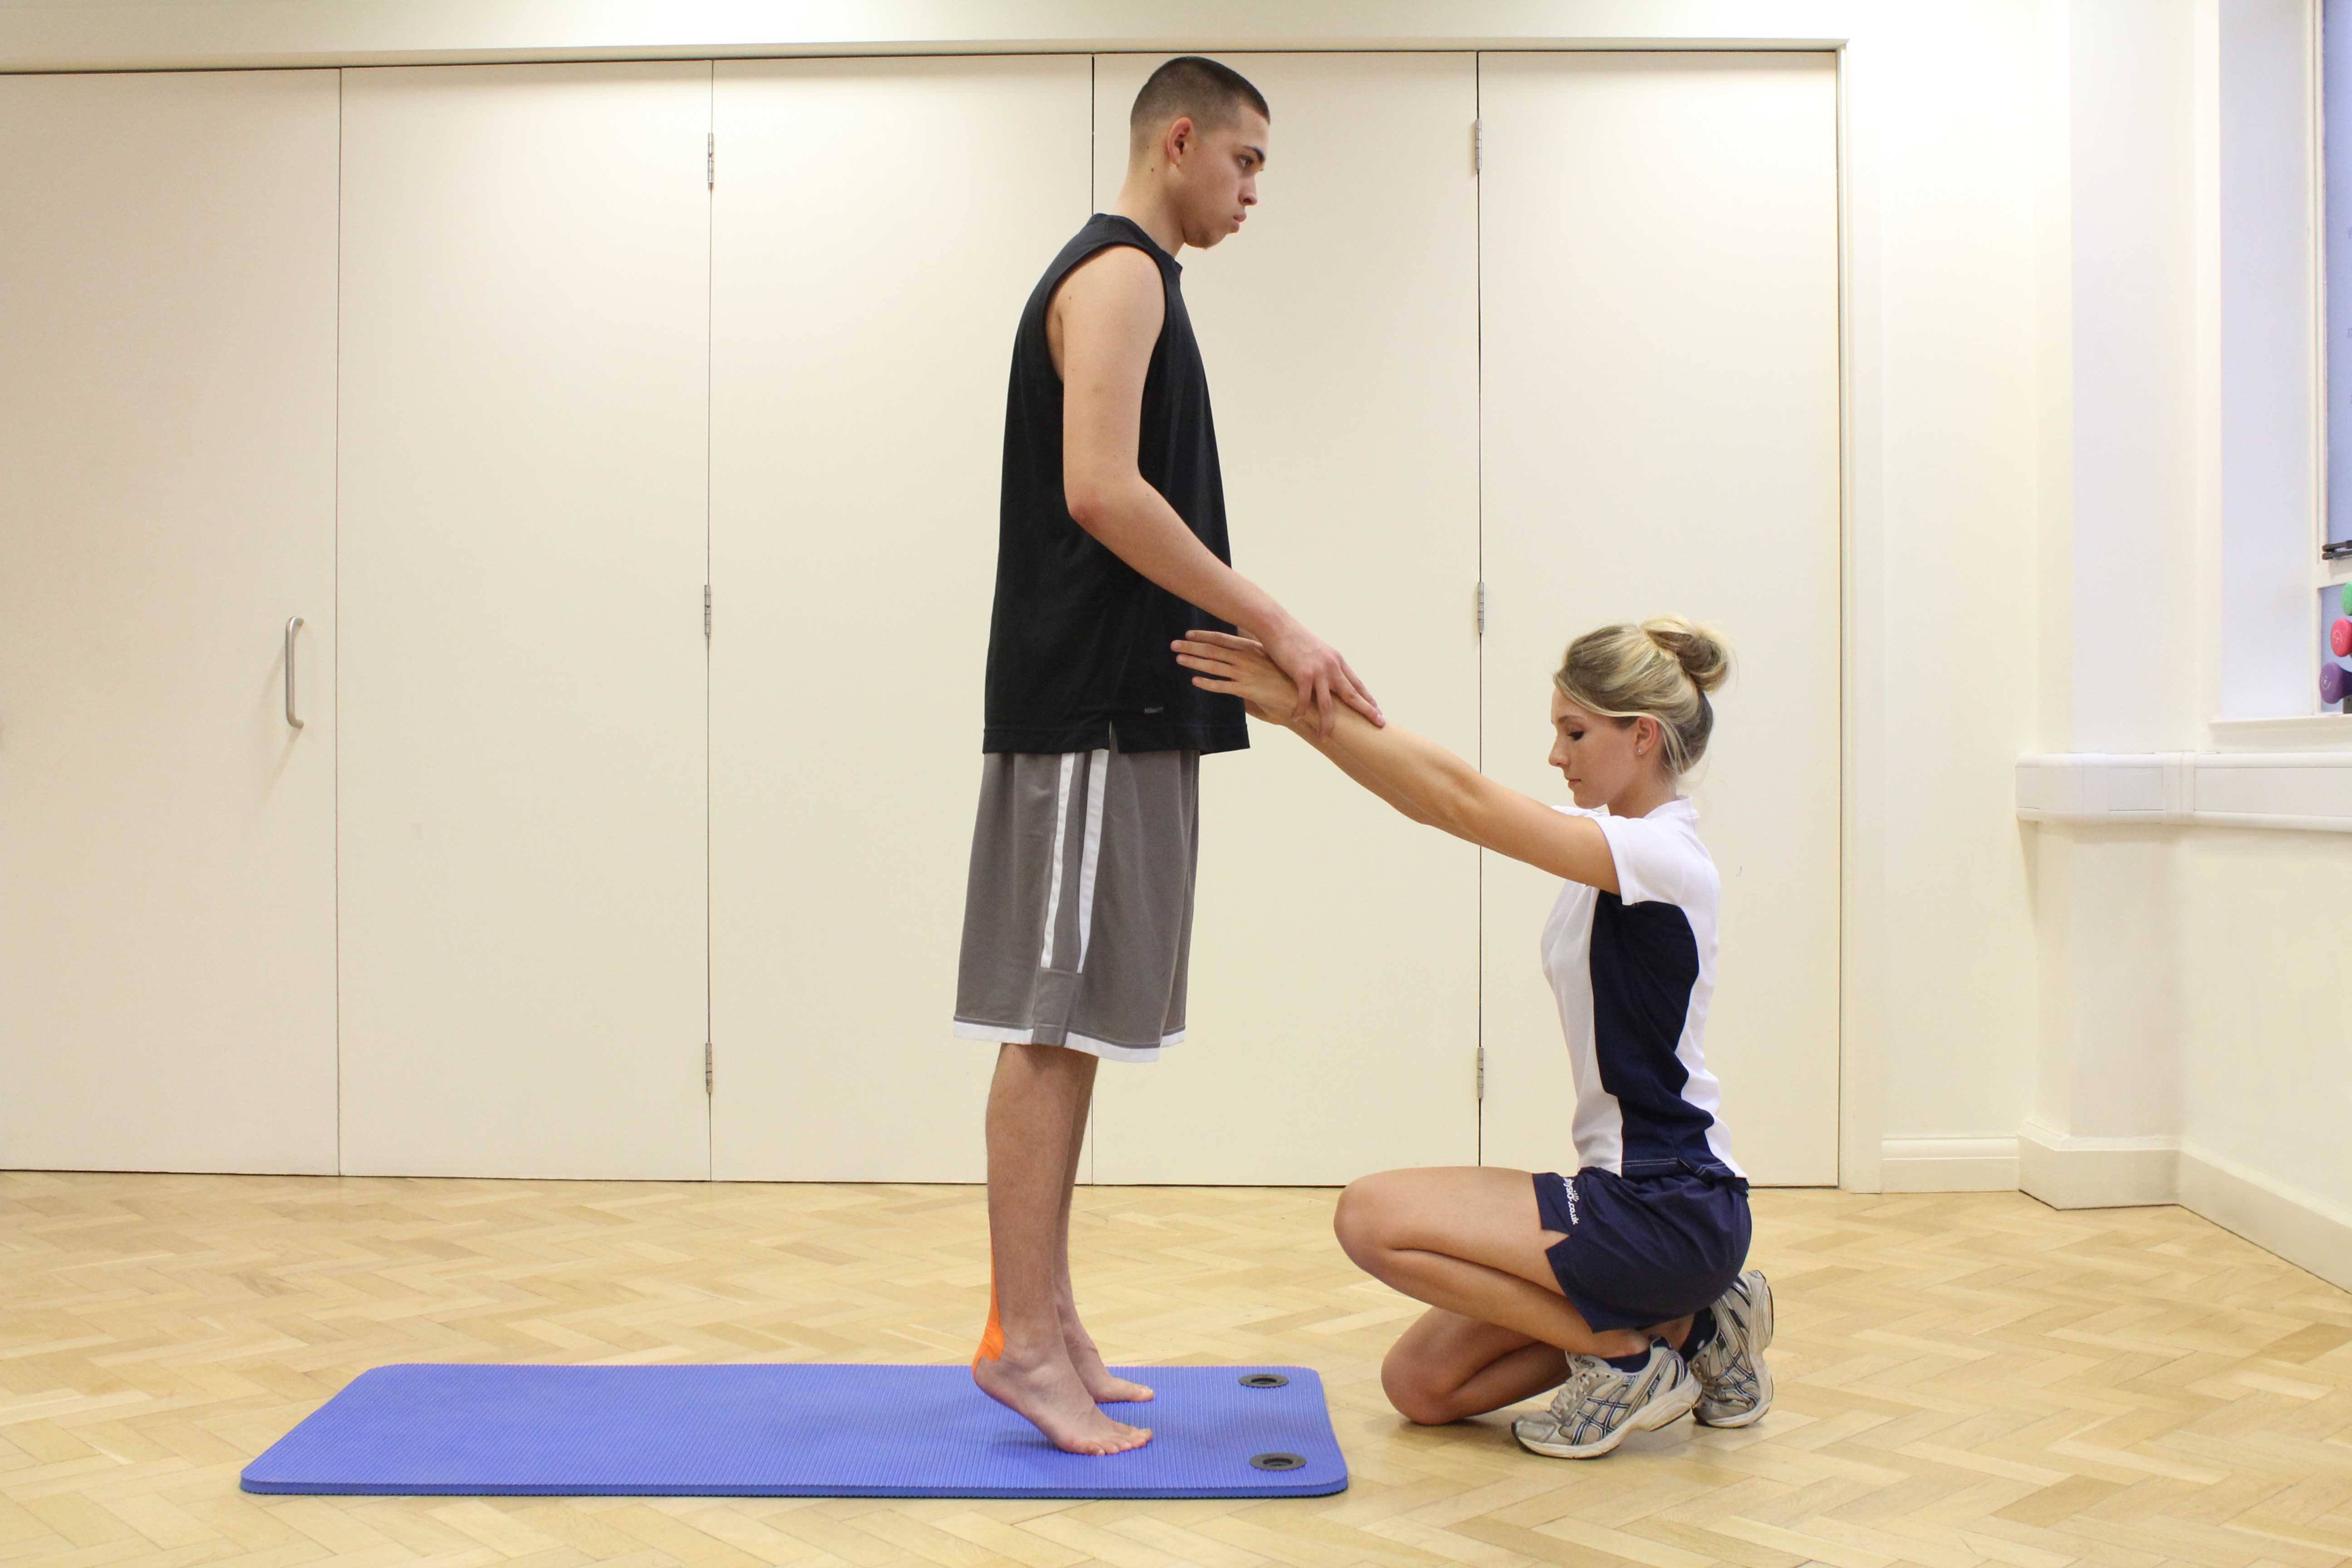 Progressive ankle strengthening exercises, with tape applied, supervised by therapist